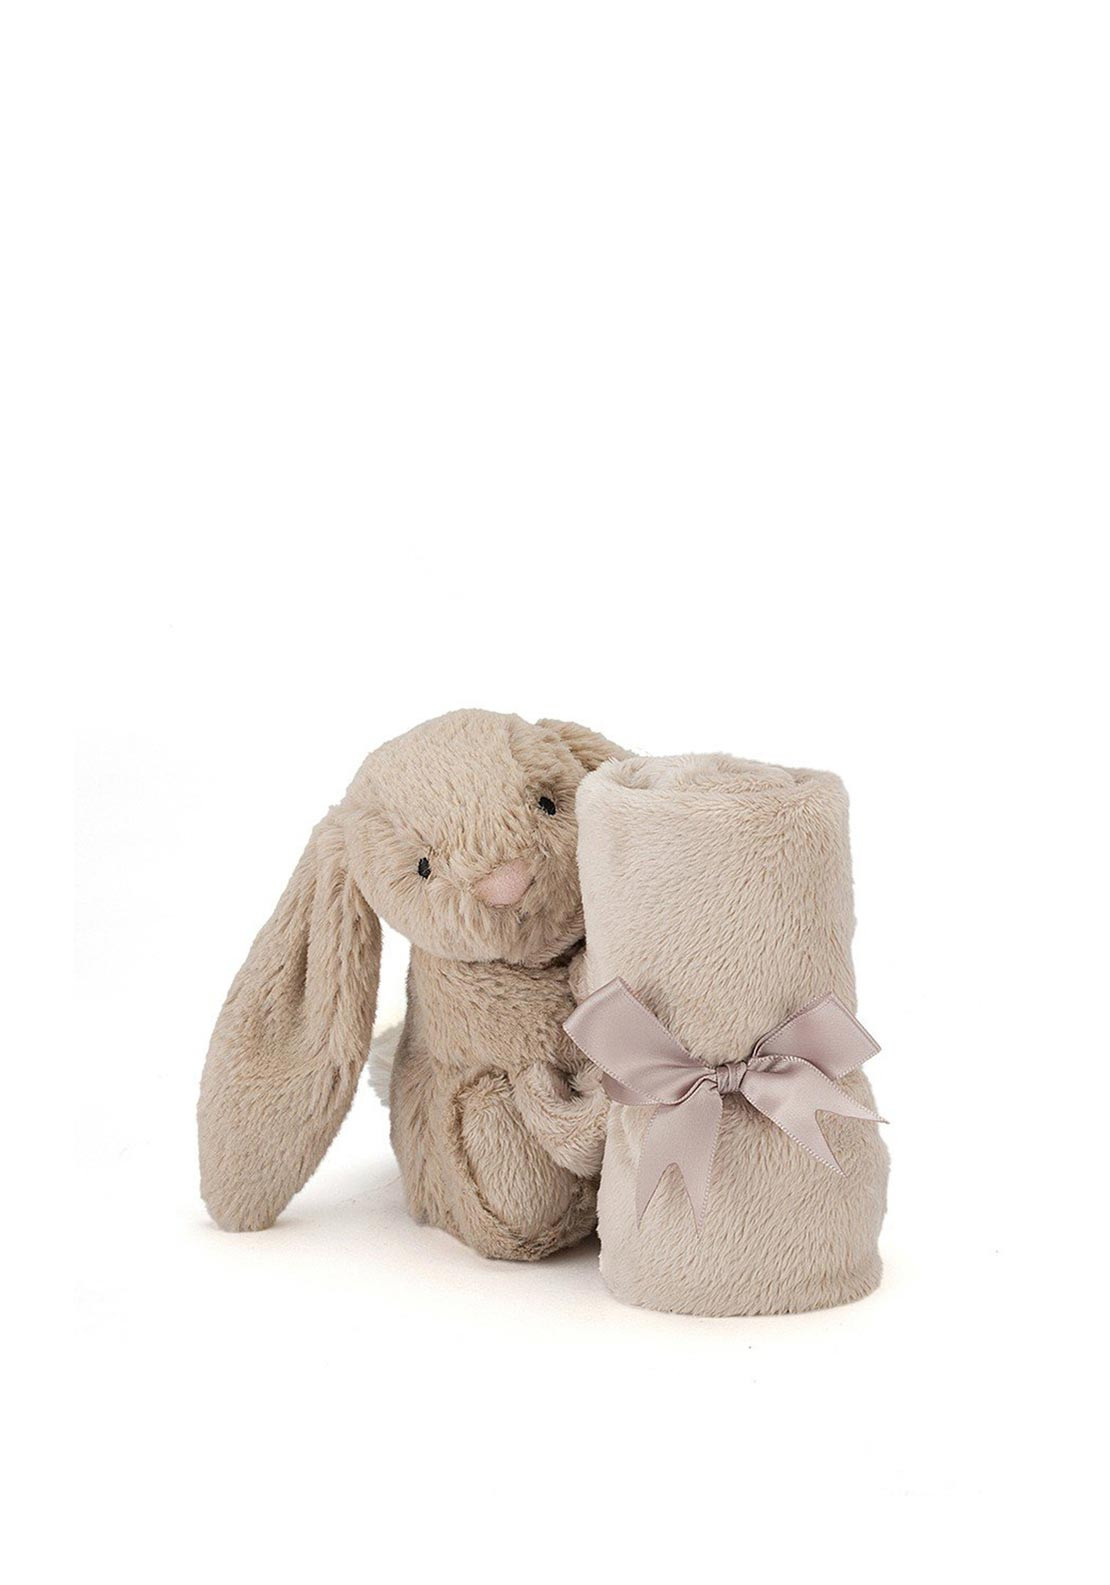 Jellycat Bashful Bunny Soother, Beige